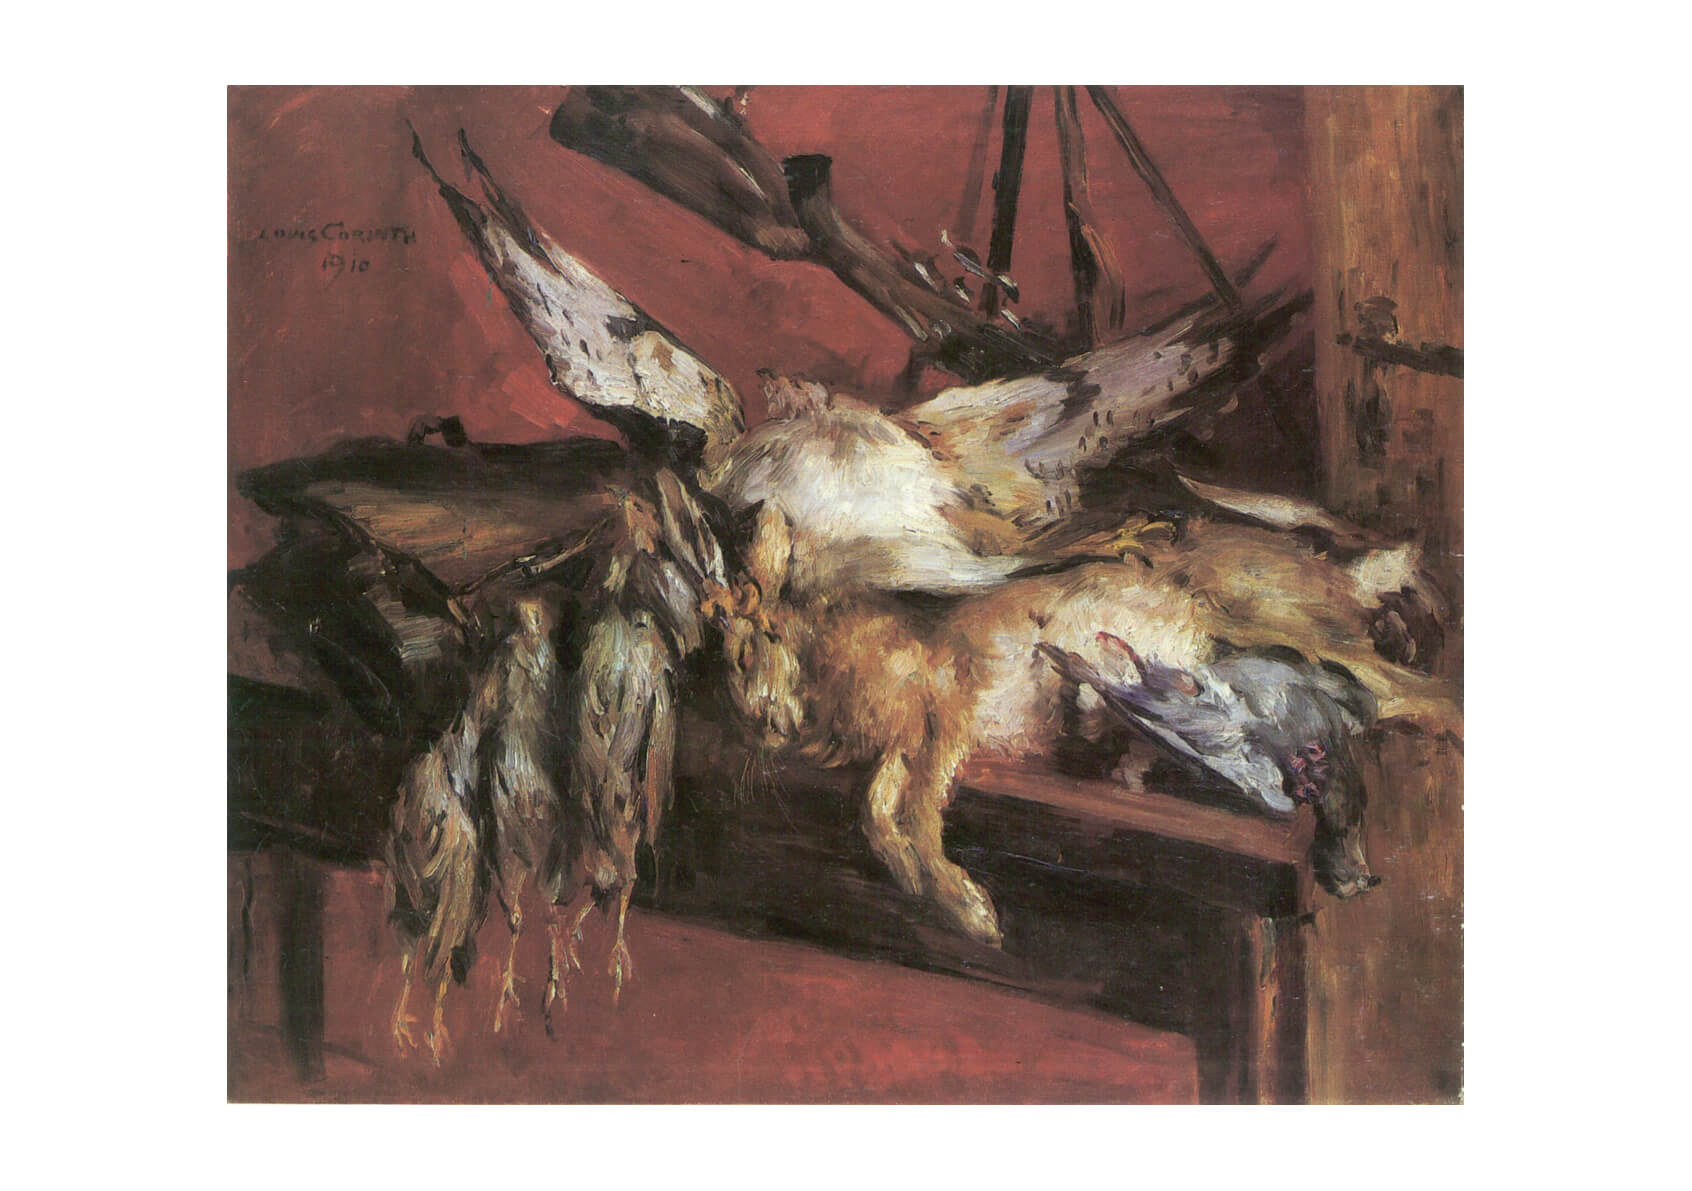 Lovis Corinth - Poached Animals